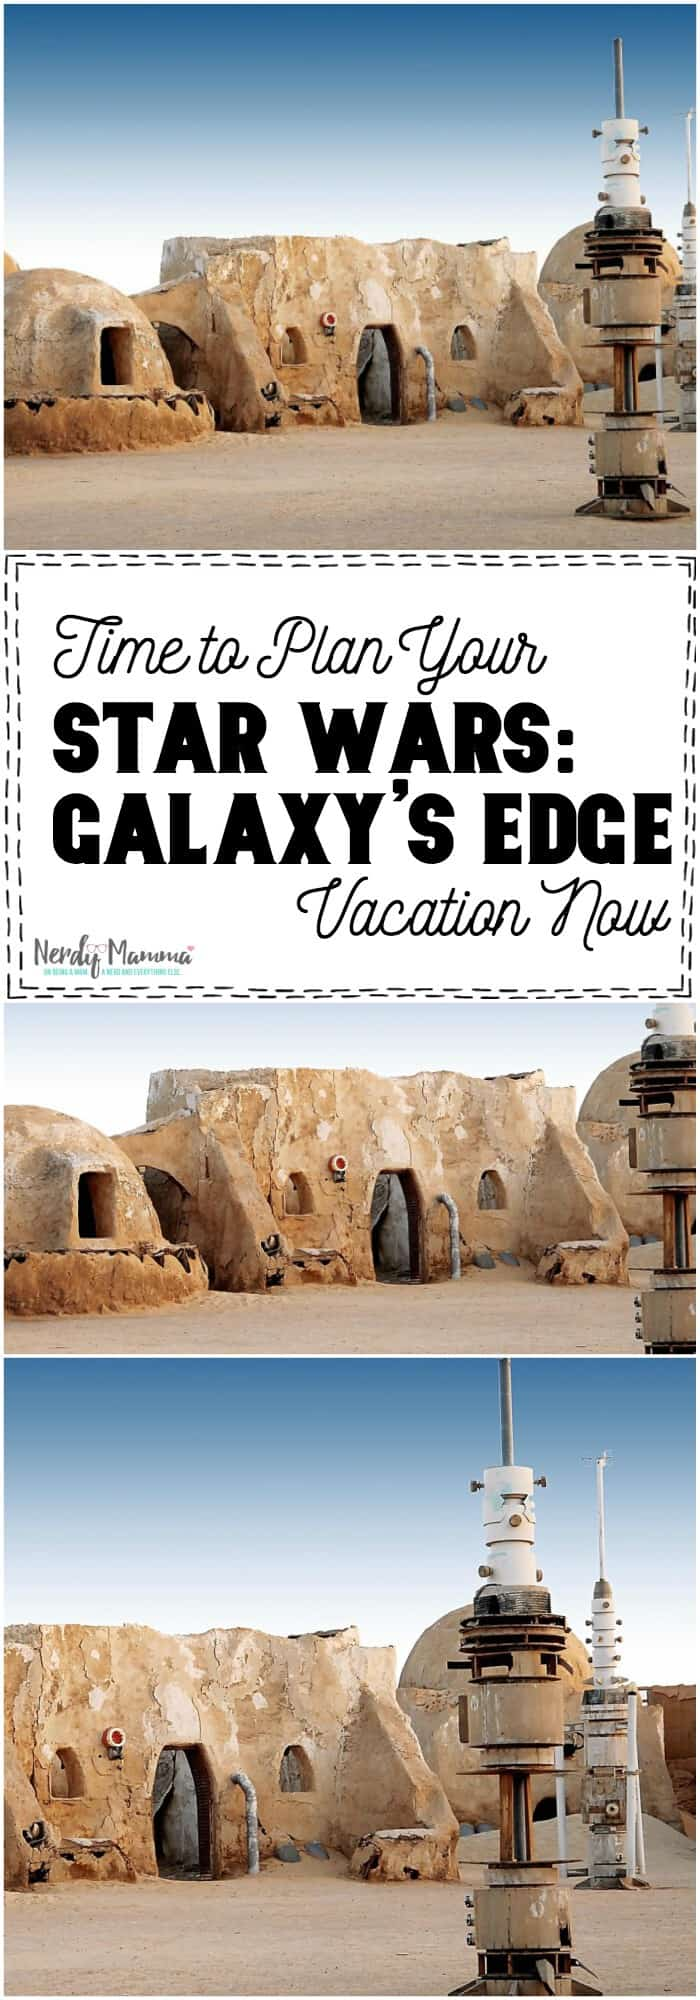 Wow. It seriously is time to plan our Star Wars: Galaxy's Edge Vacation!